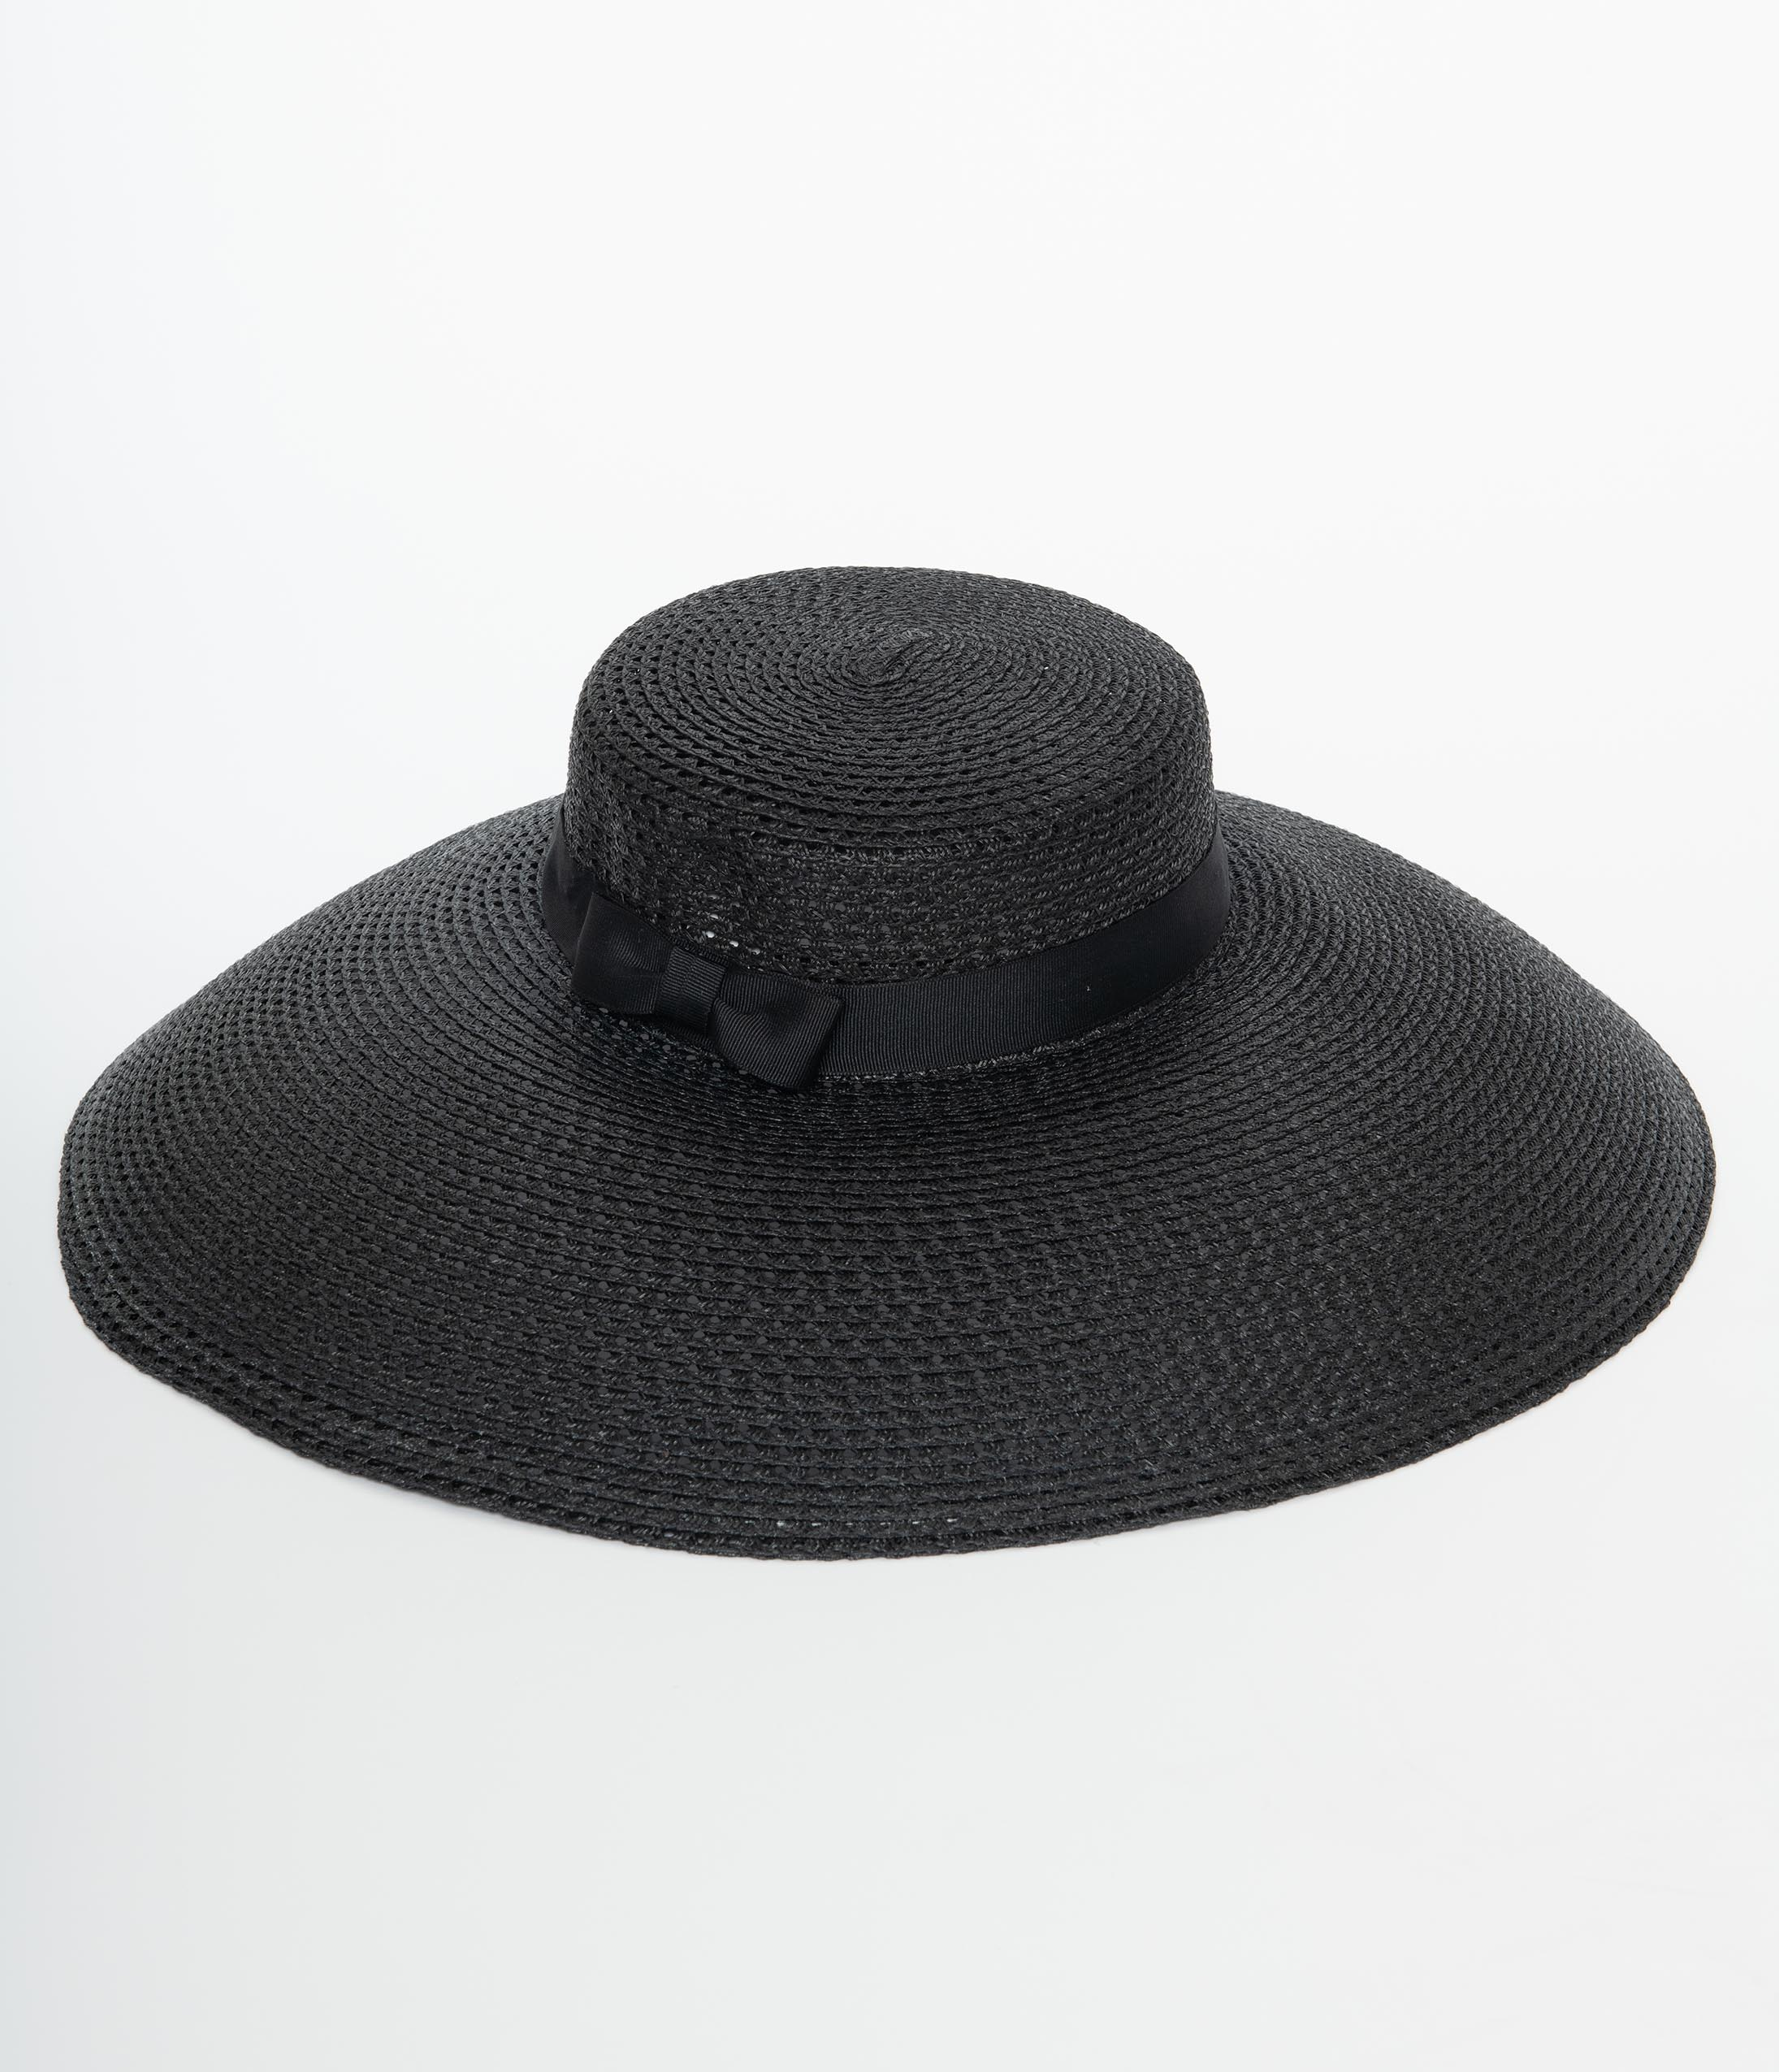 Tea Party Hats – Victorian to 1950s Unique Vintage 1950S Black Cartwheel Sun Hat $44.00 AT vintagedancer.com